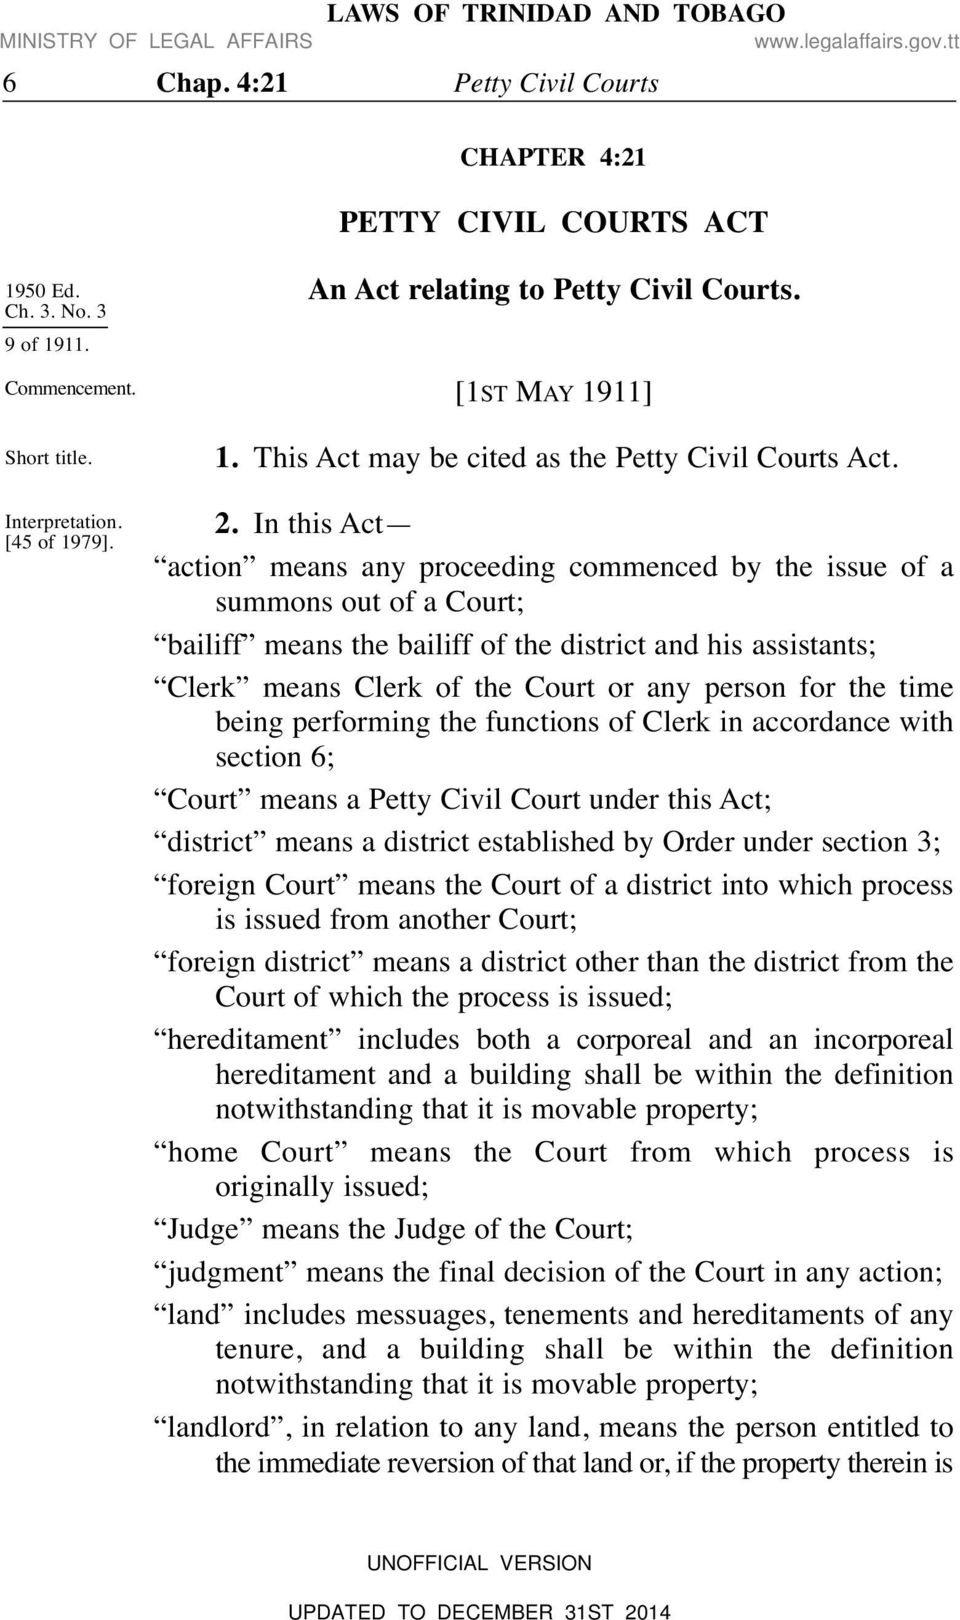 petty civil courts act - pdf